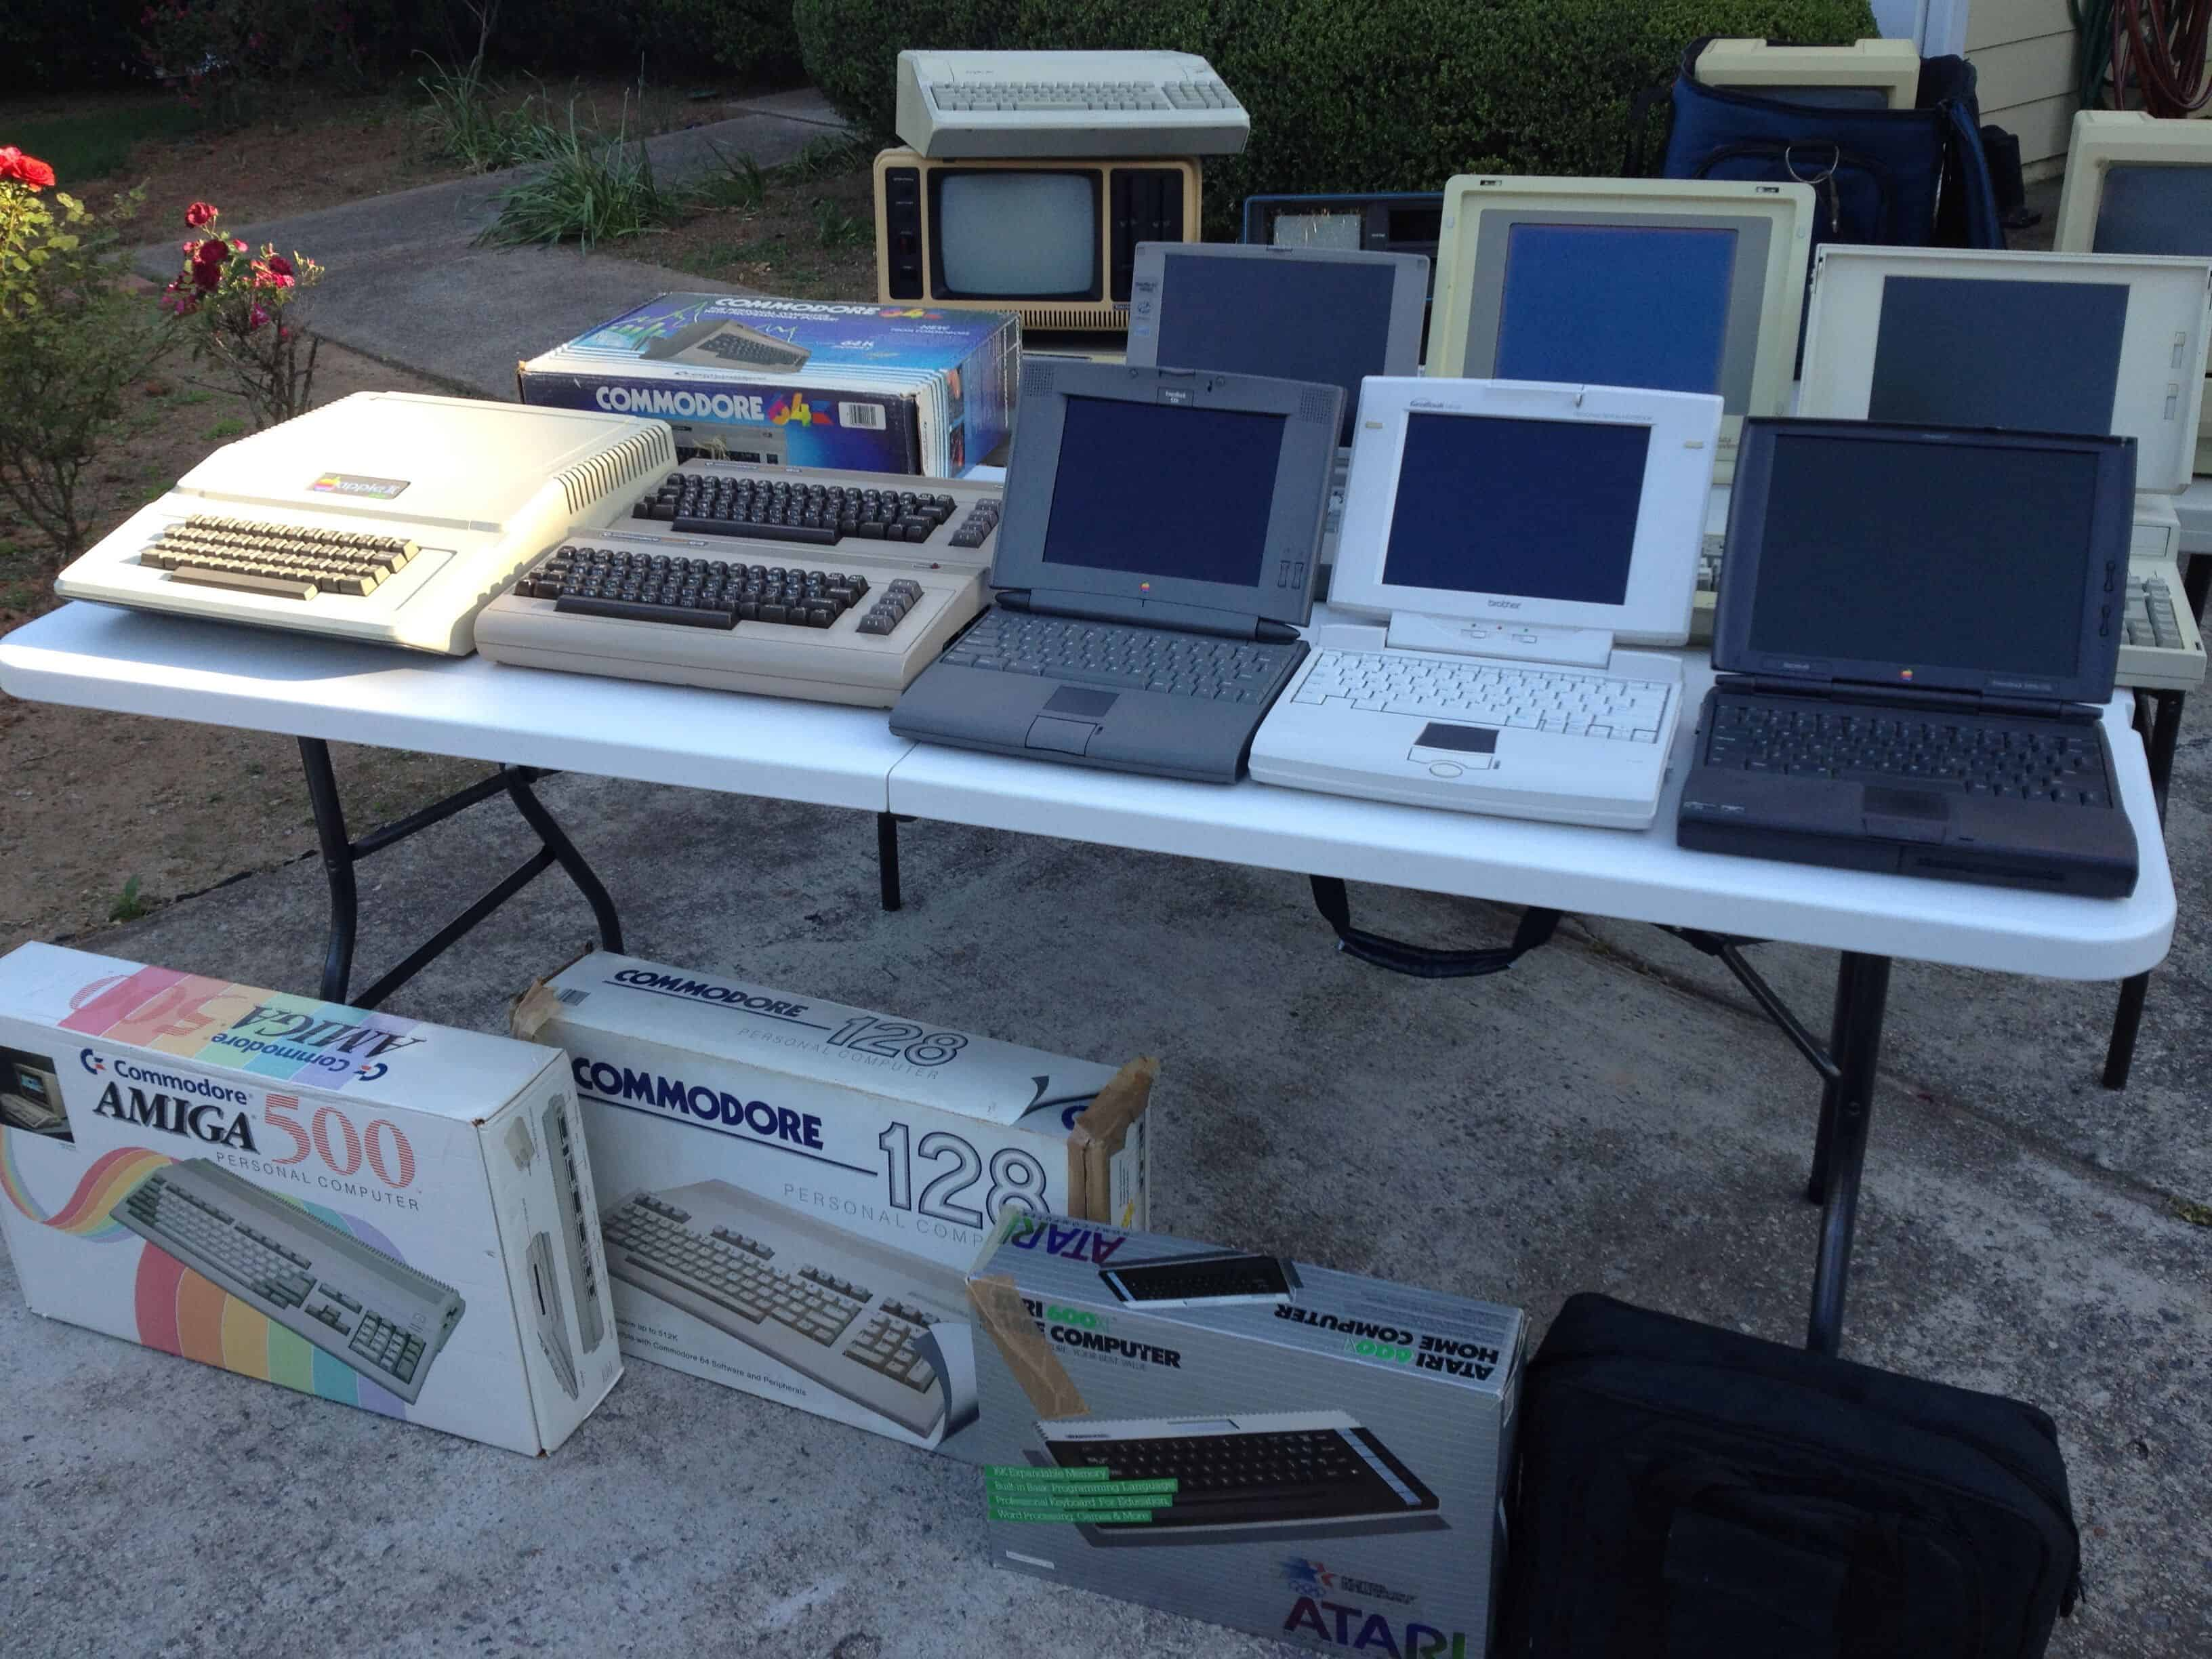 Once you start collecting computers, it's hard to stop!